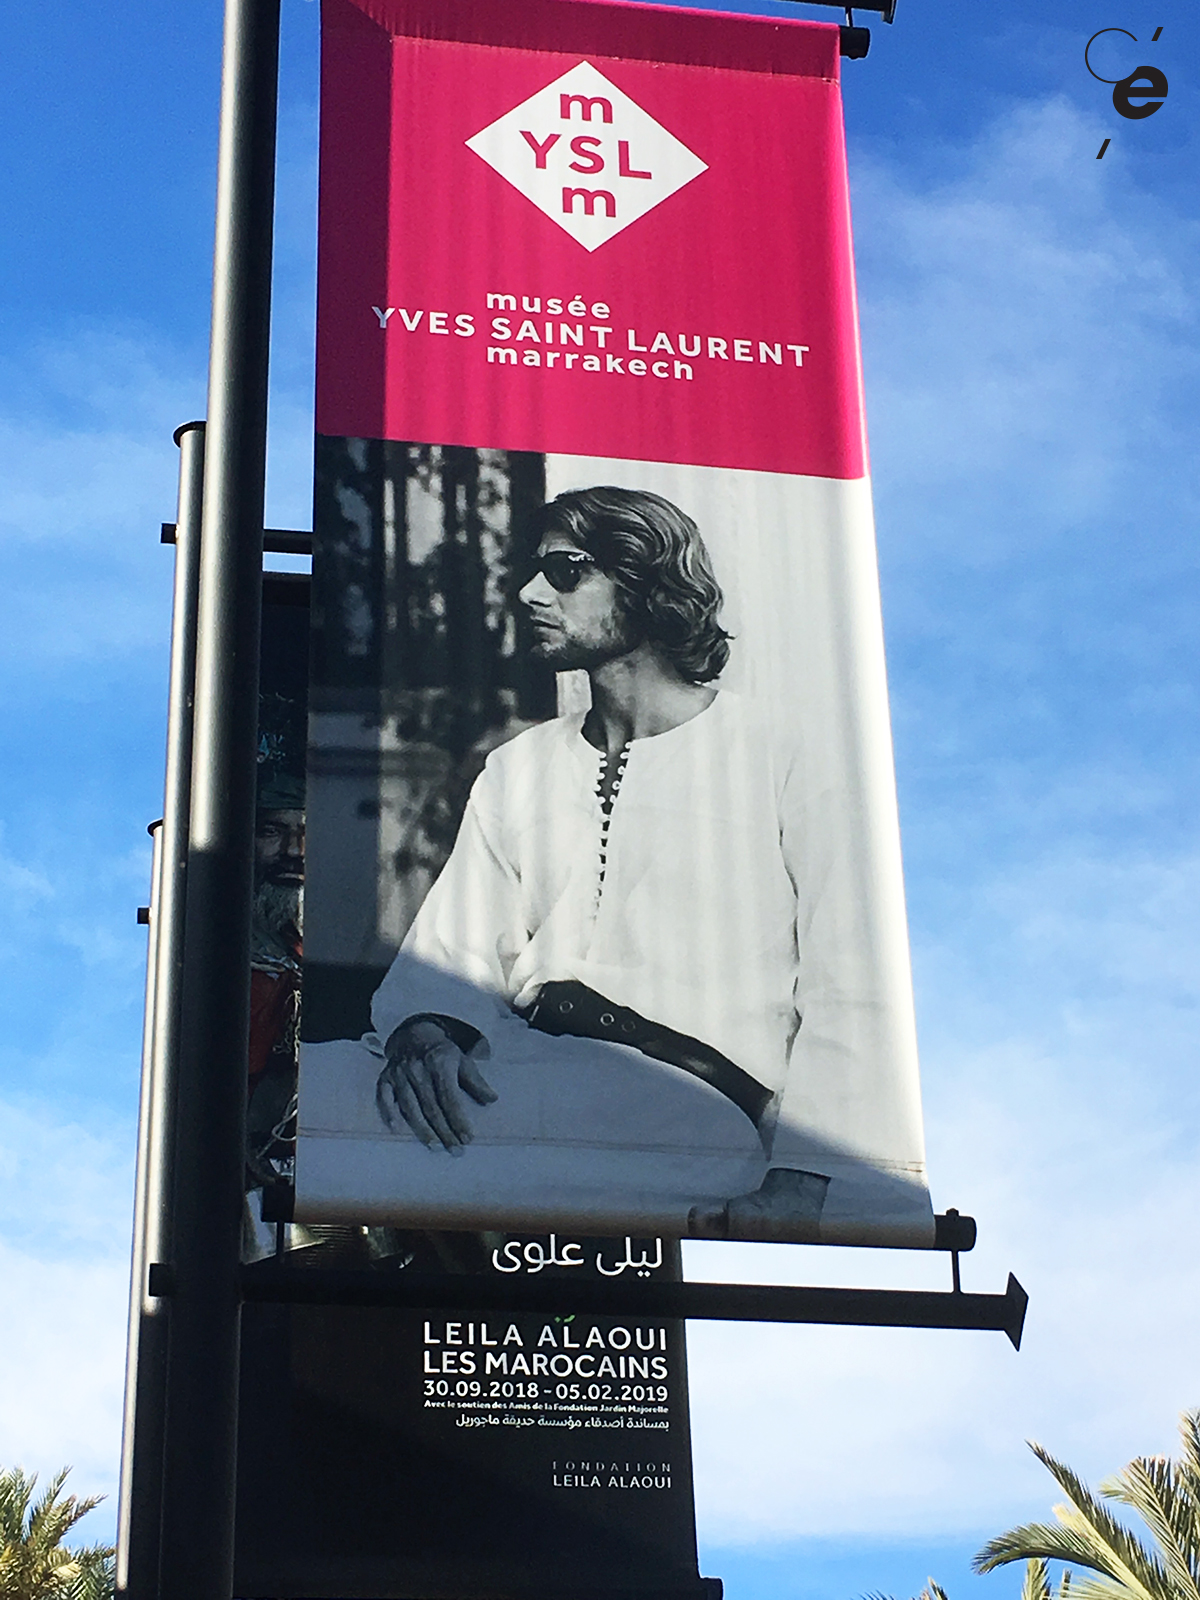 yves saint laurent marrakech